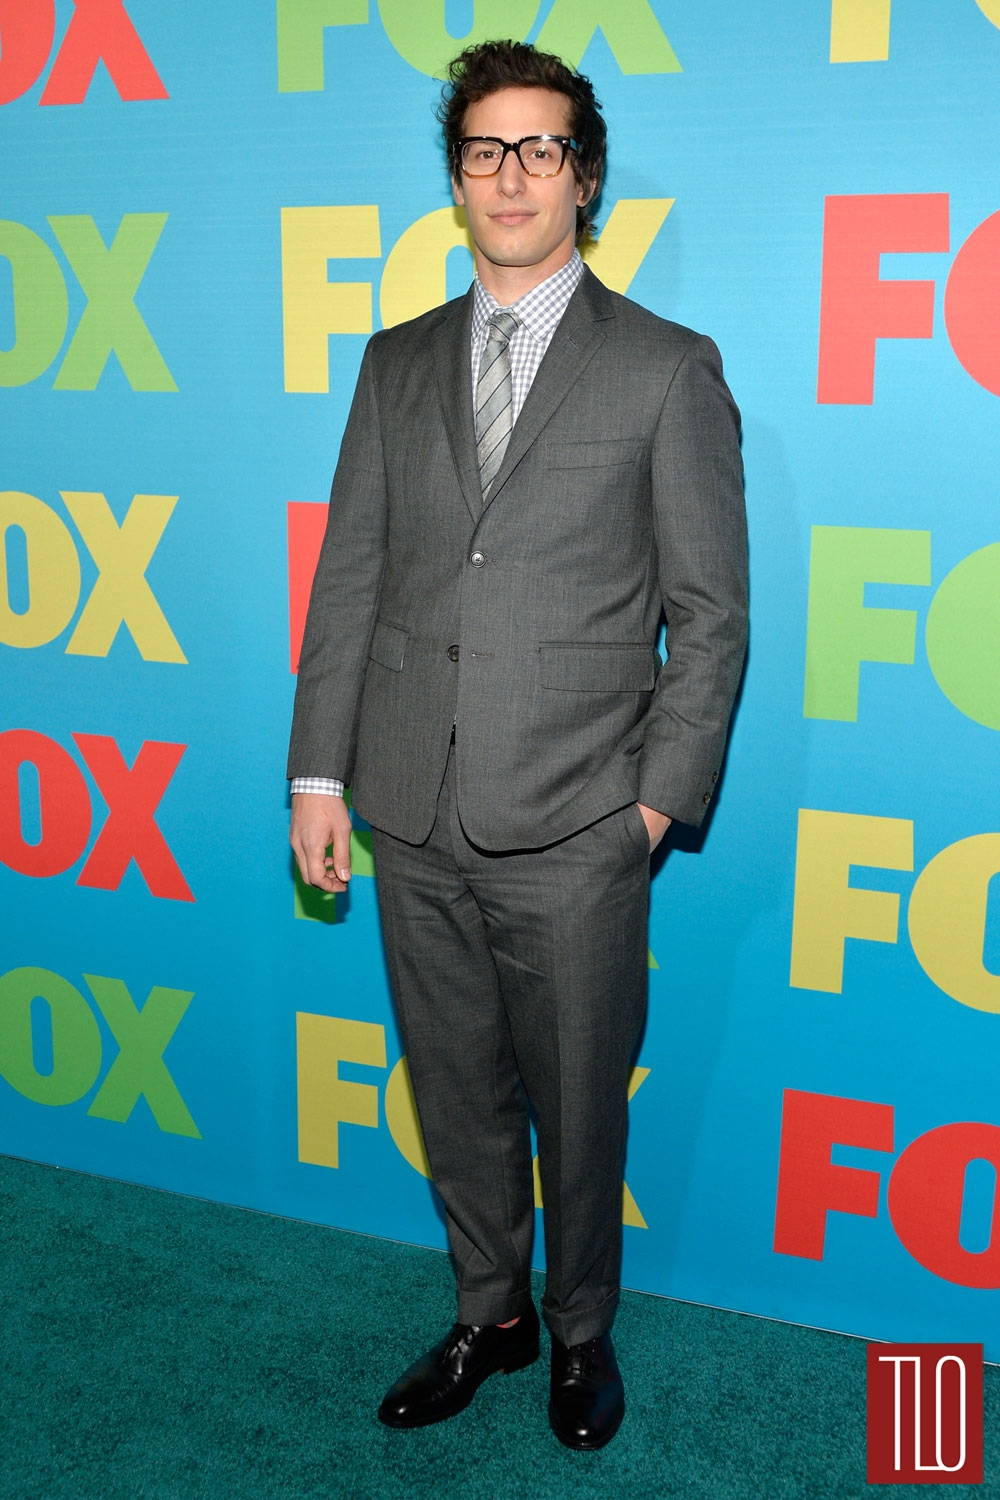 Andy-Samberg-FOX-2014-Presentation-Tom-Lorenzo-Site-TLO (1)